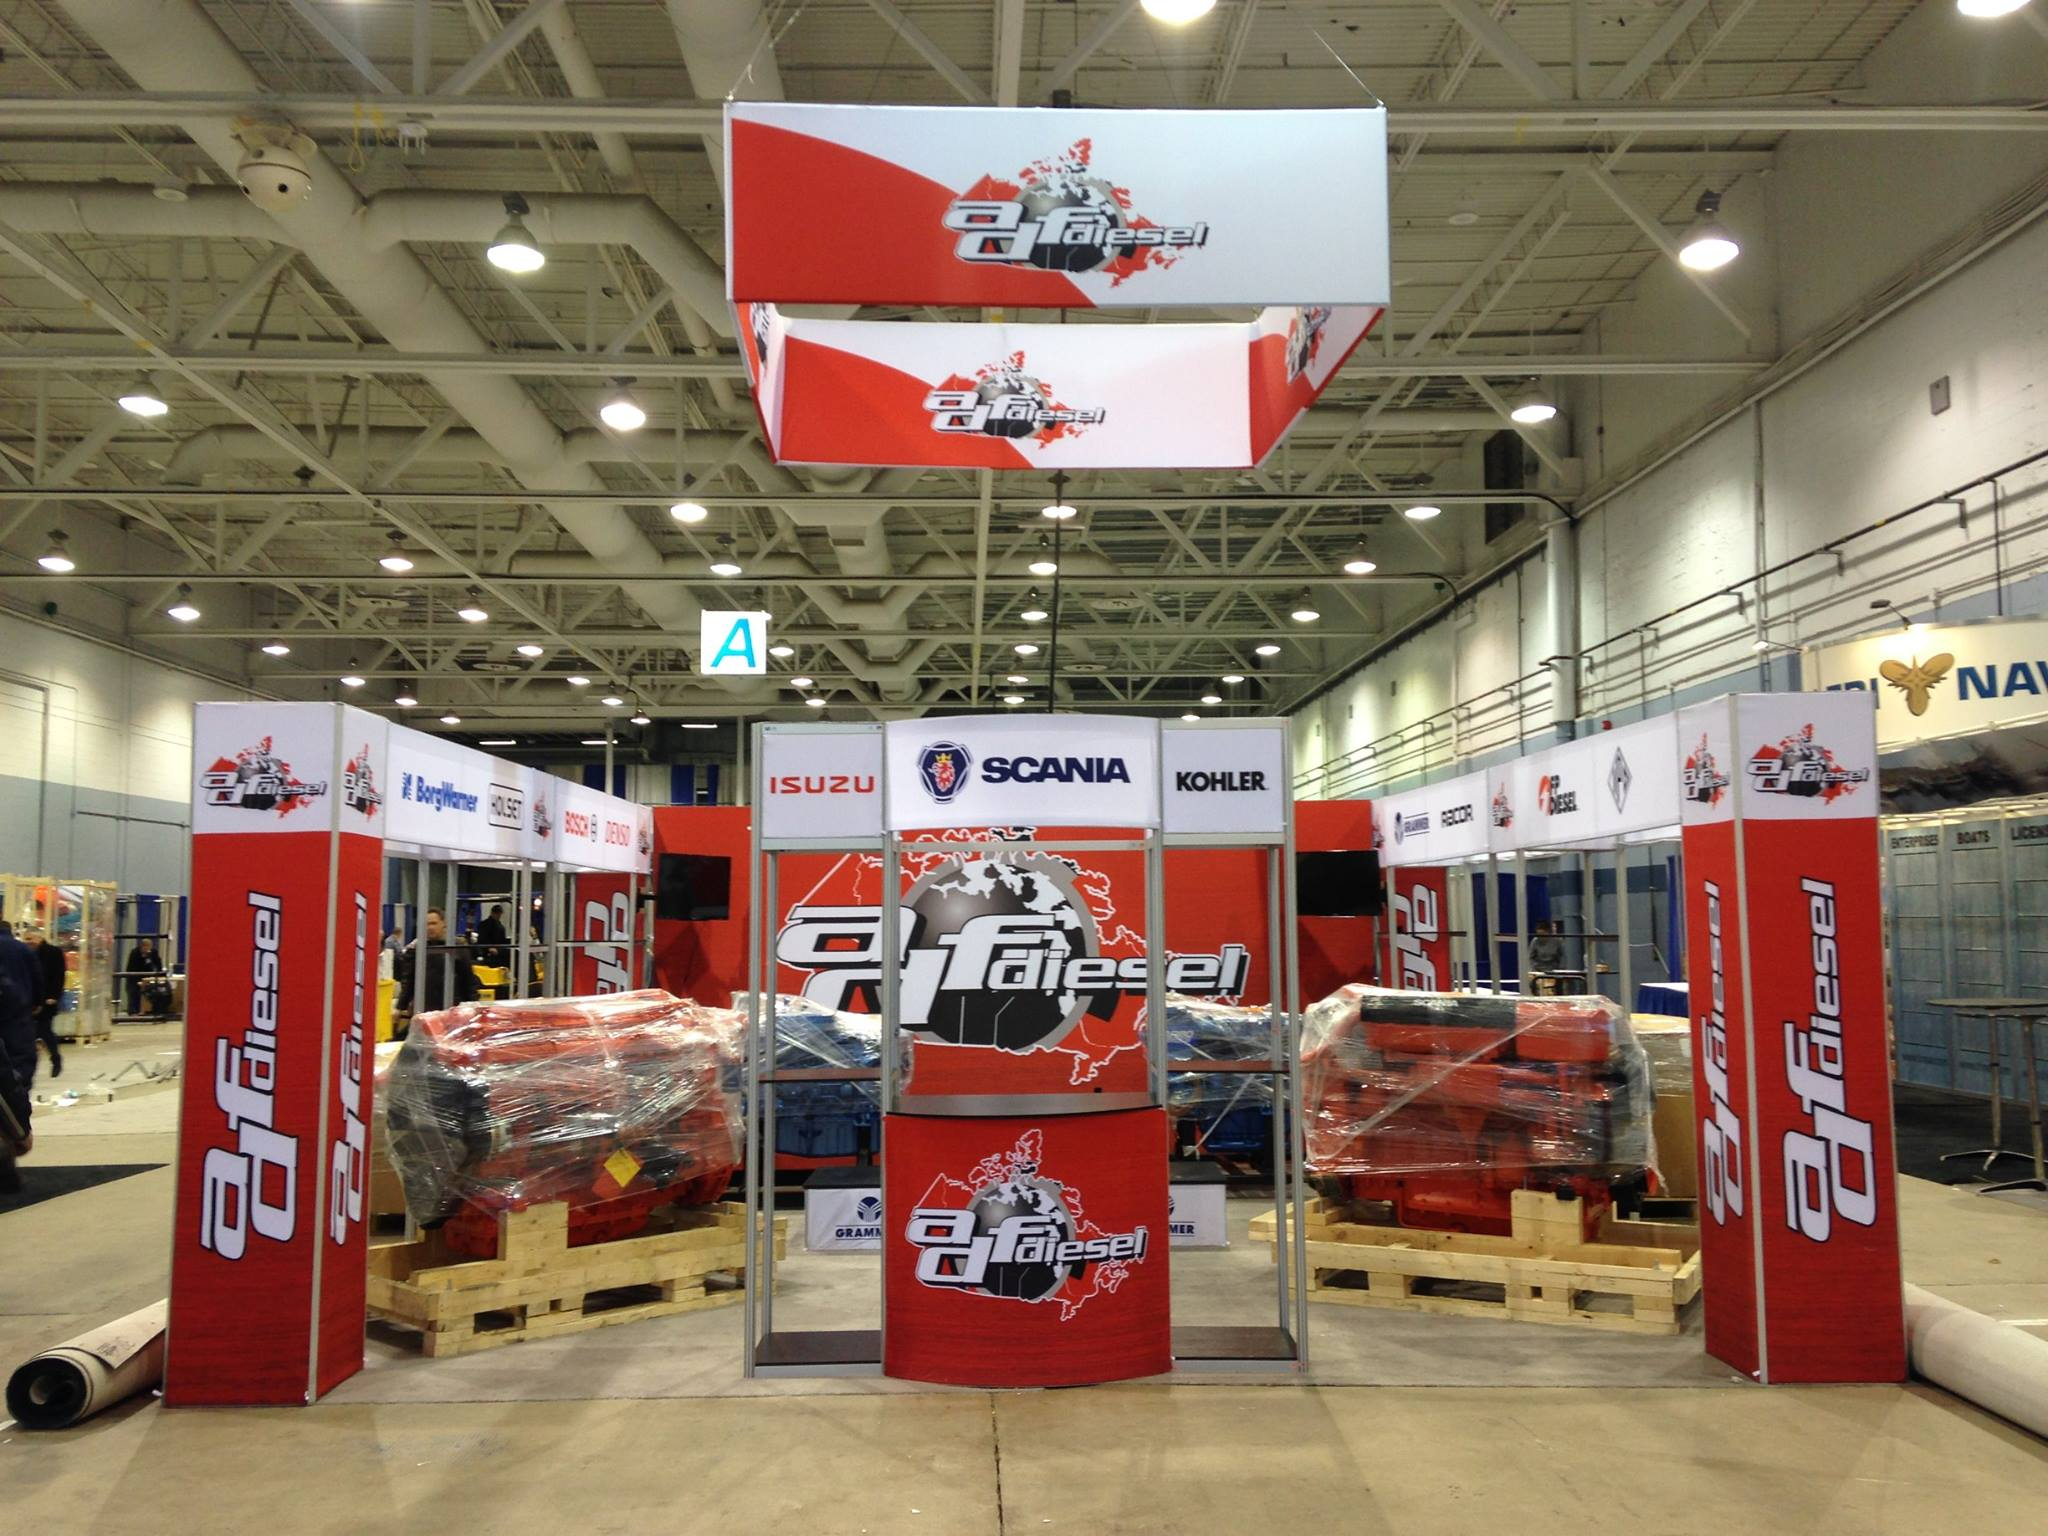 Best Moncton Trade Show Displays | Exhibits | Booths | Banners